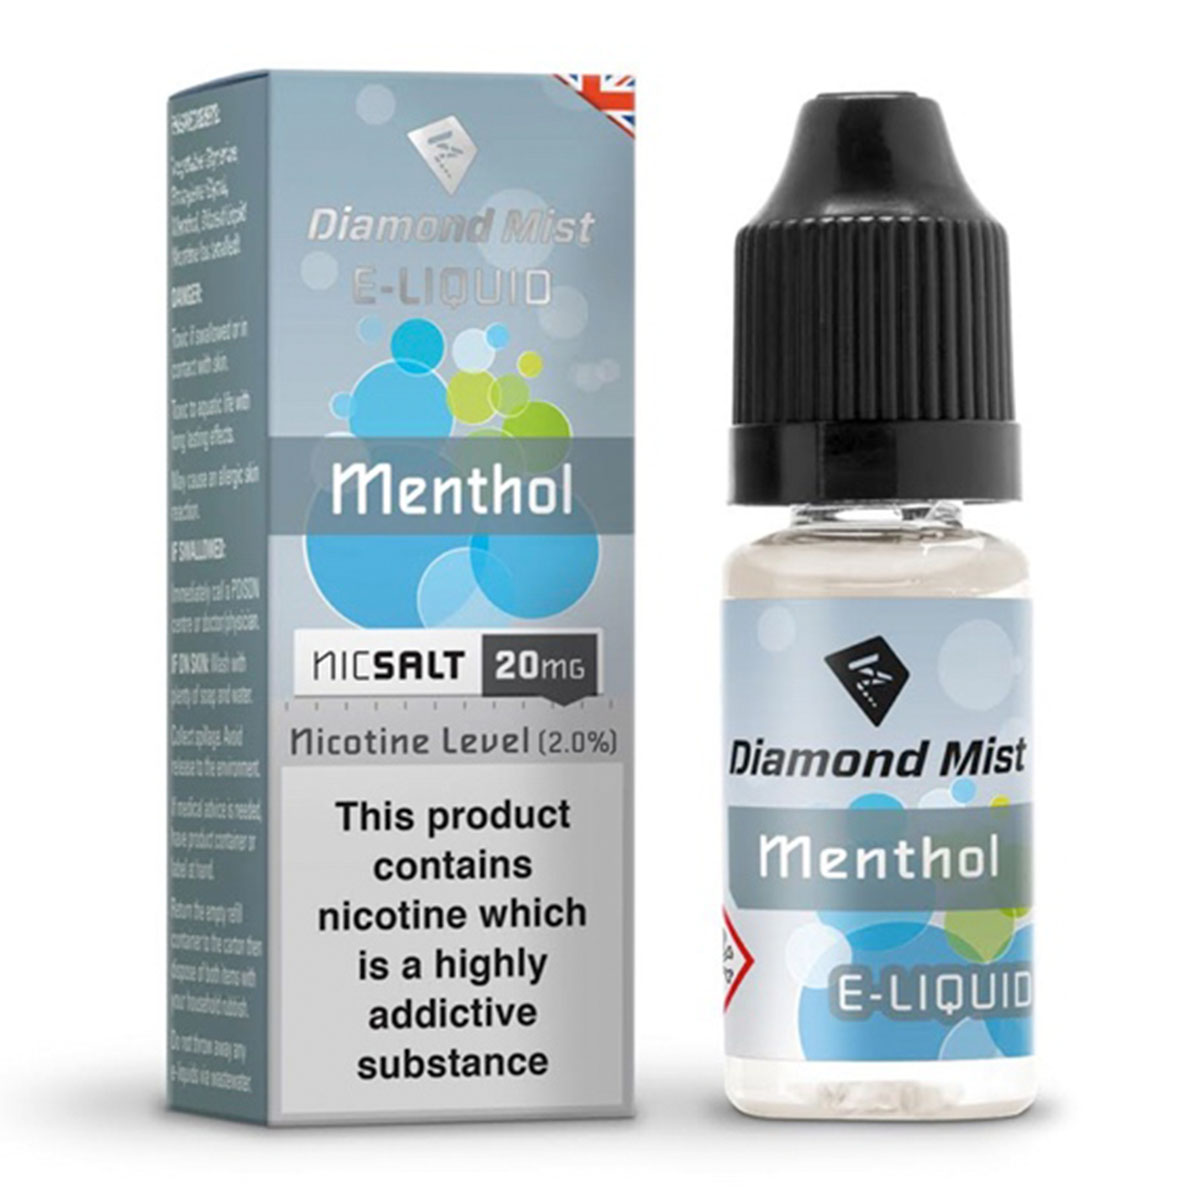 MENTHOL NIC SALT BY DIAMOND MIST